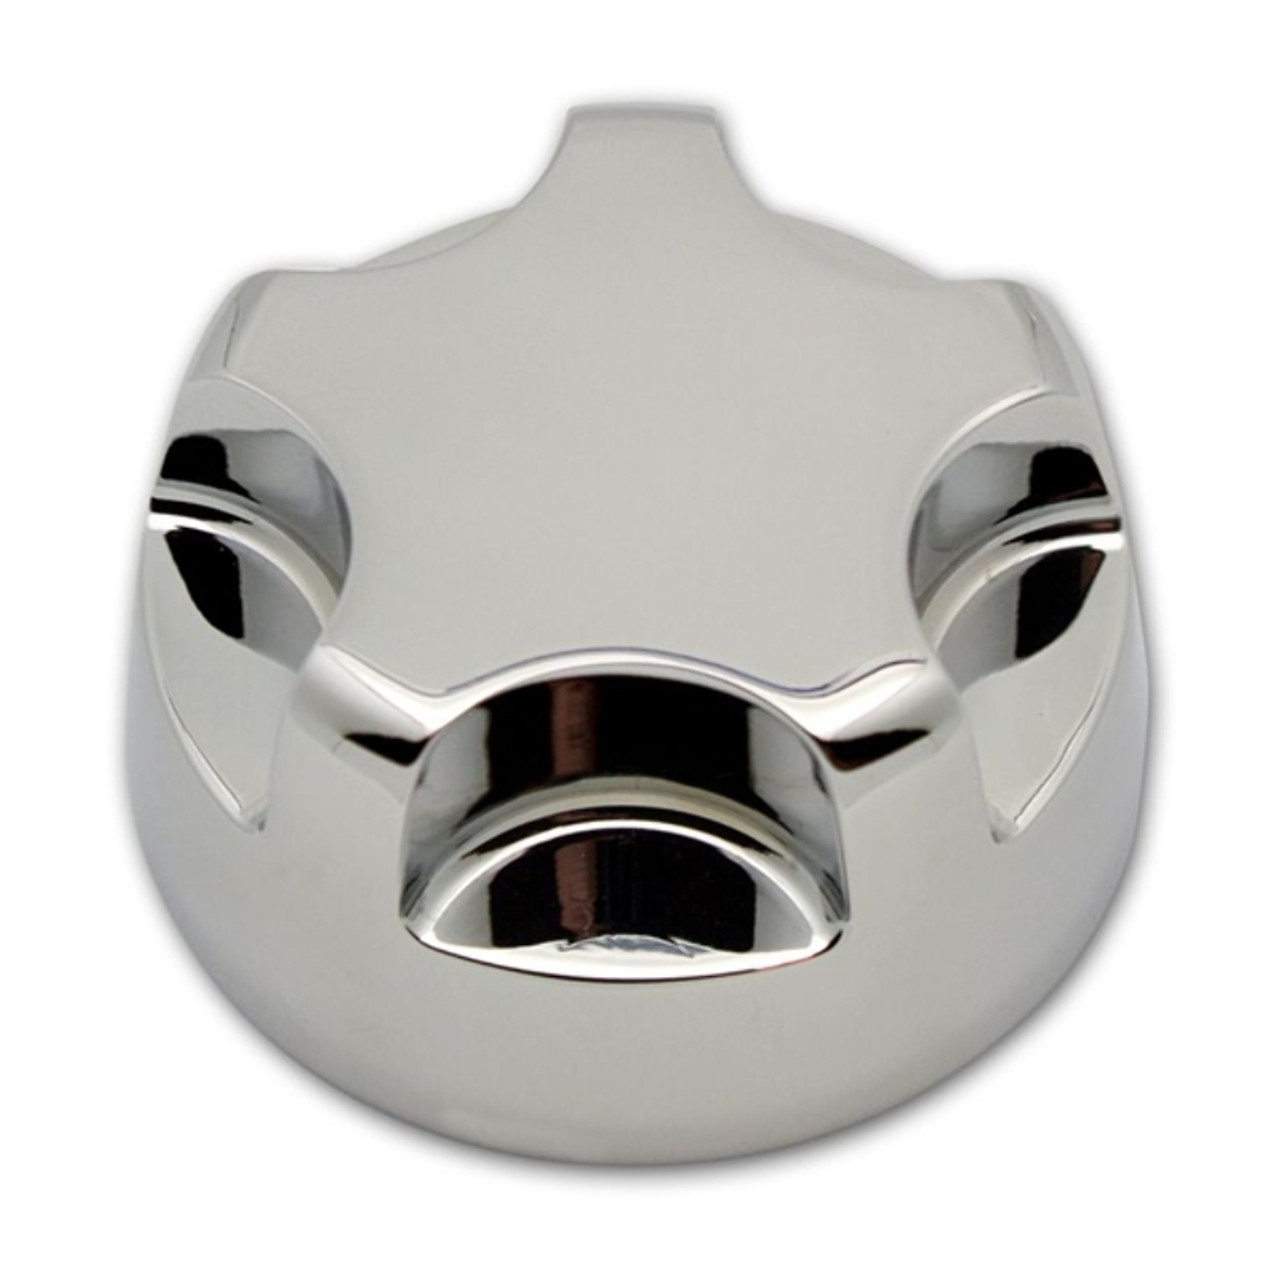 Pirate Mfg CA0010SC 2010-13 Camaro 6.2L V8 Smooth Chrome Billet Oil Cap Ea.